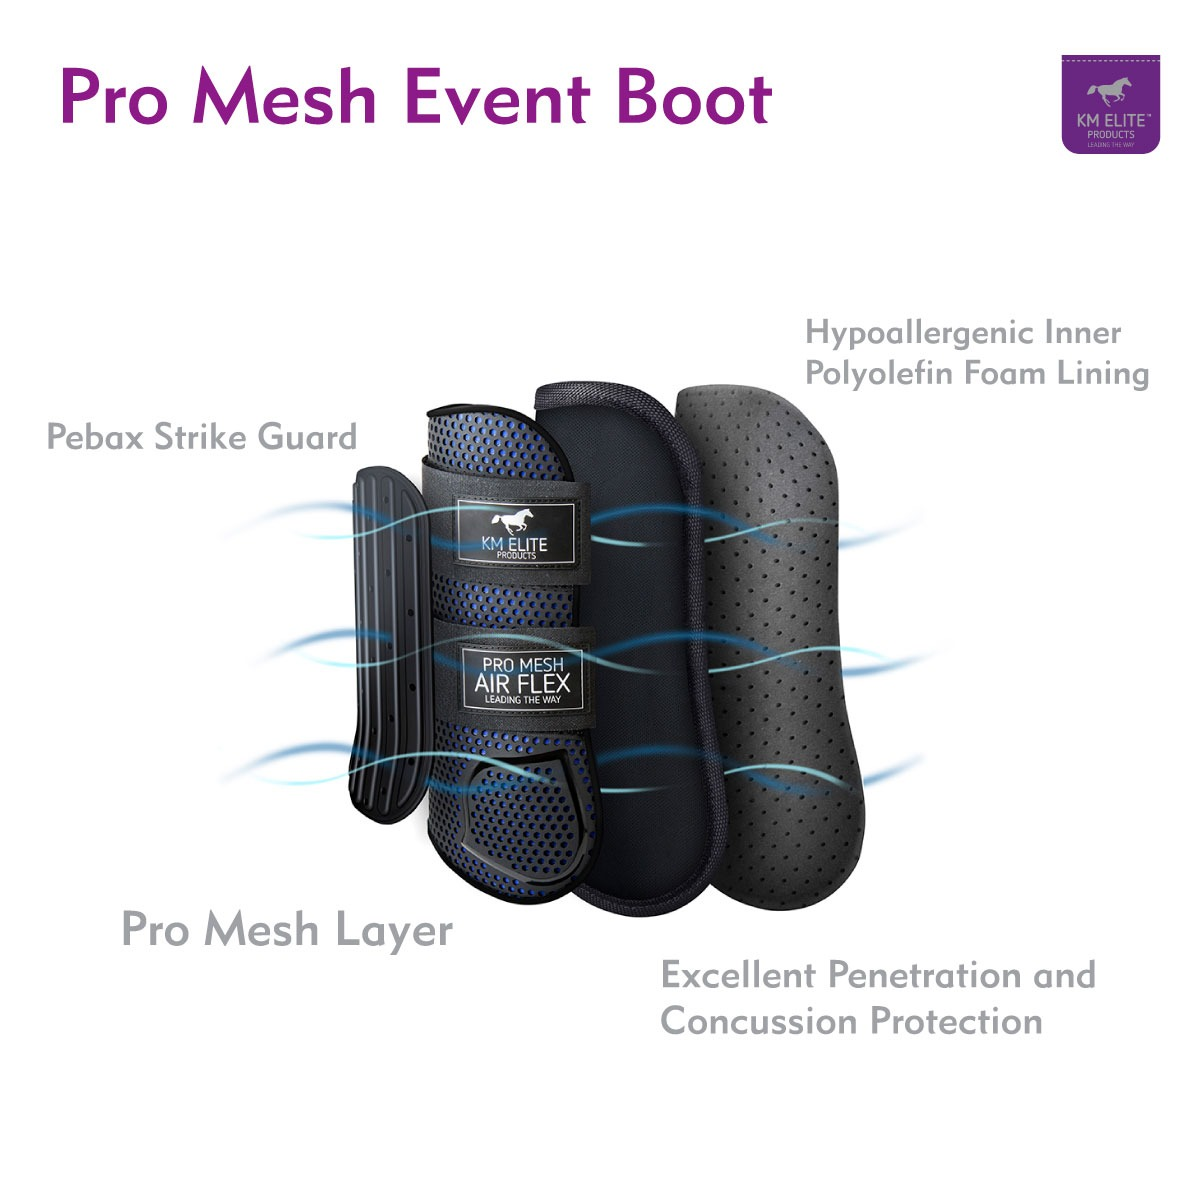 Pro Mesh Event Boot Set *FREE HIND SET*